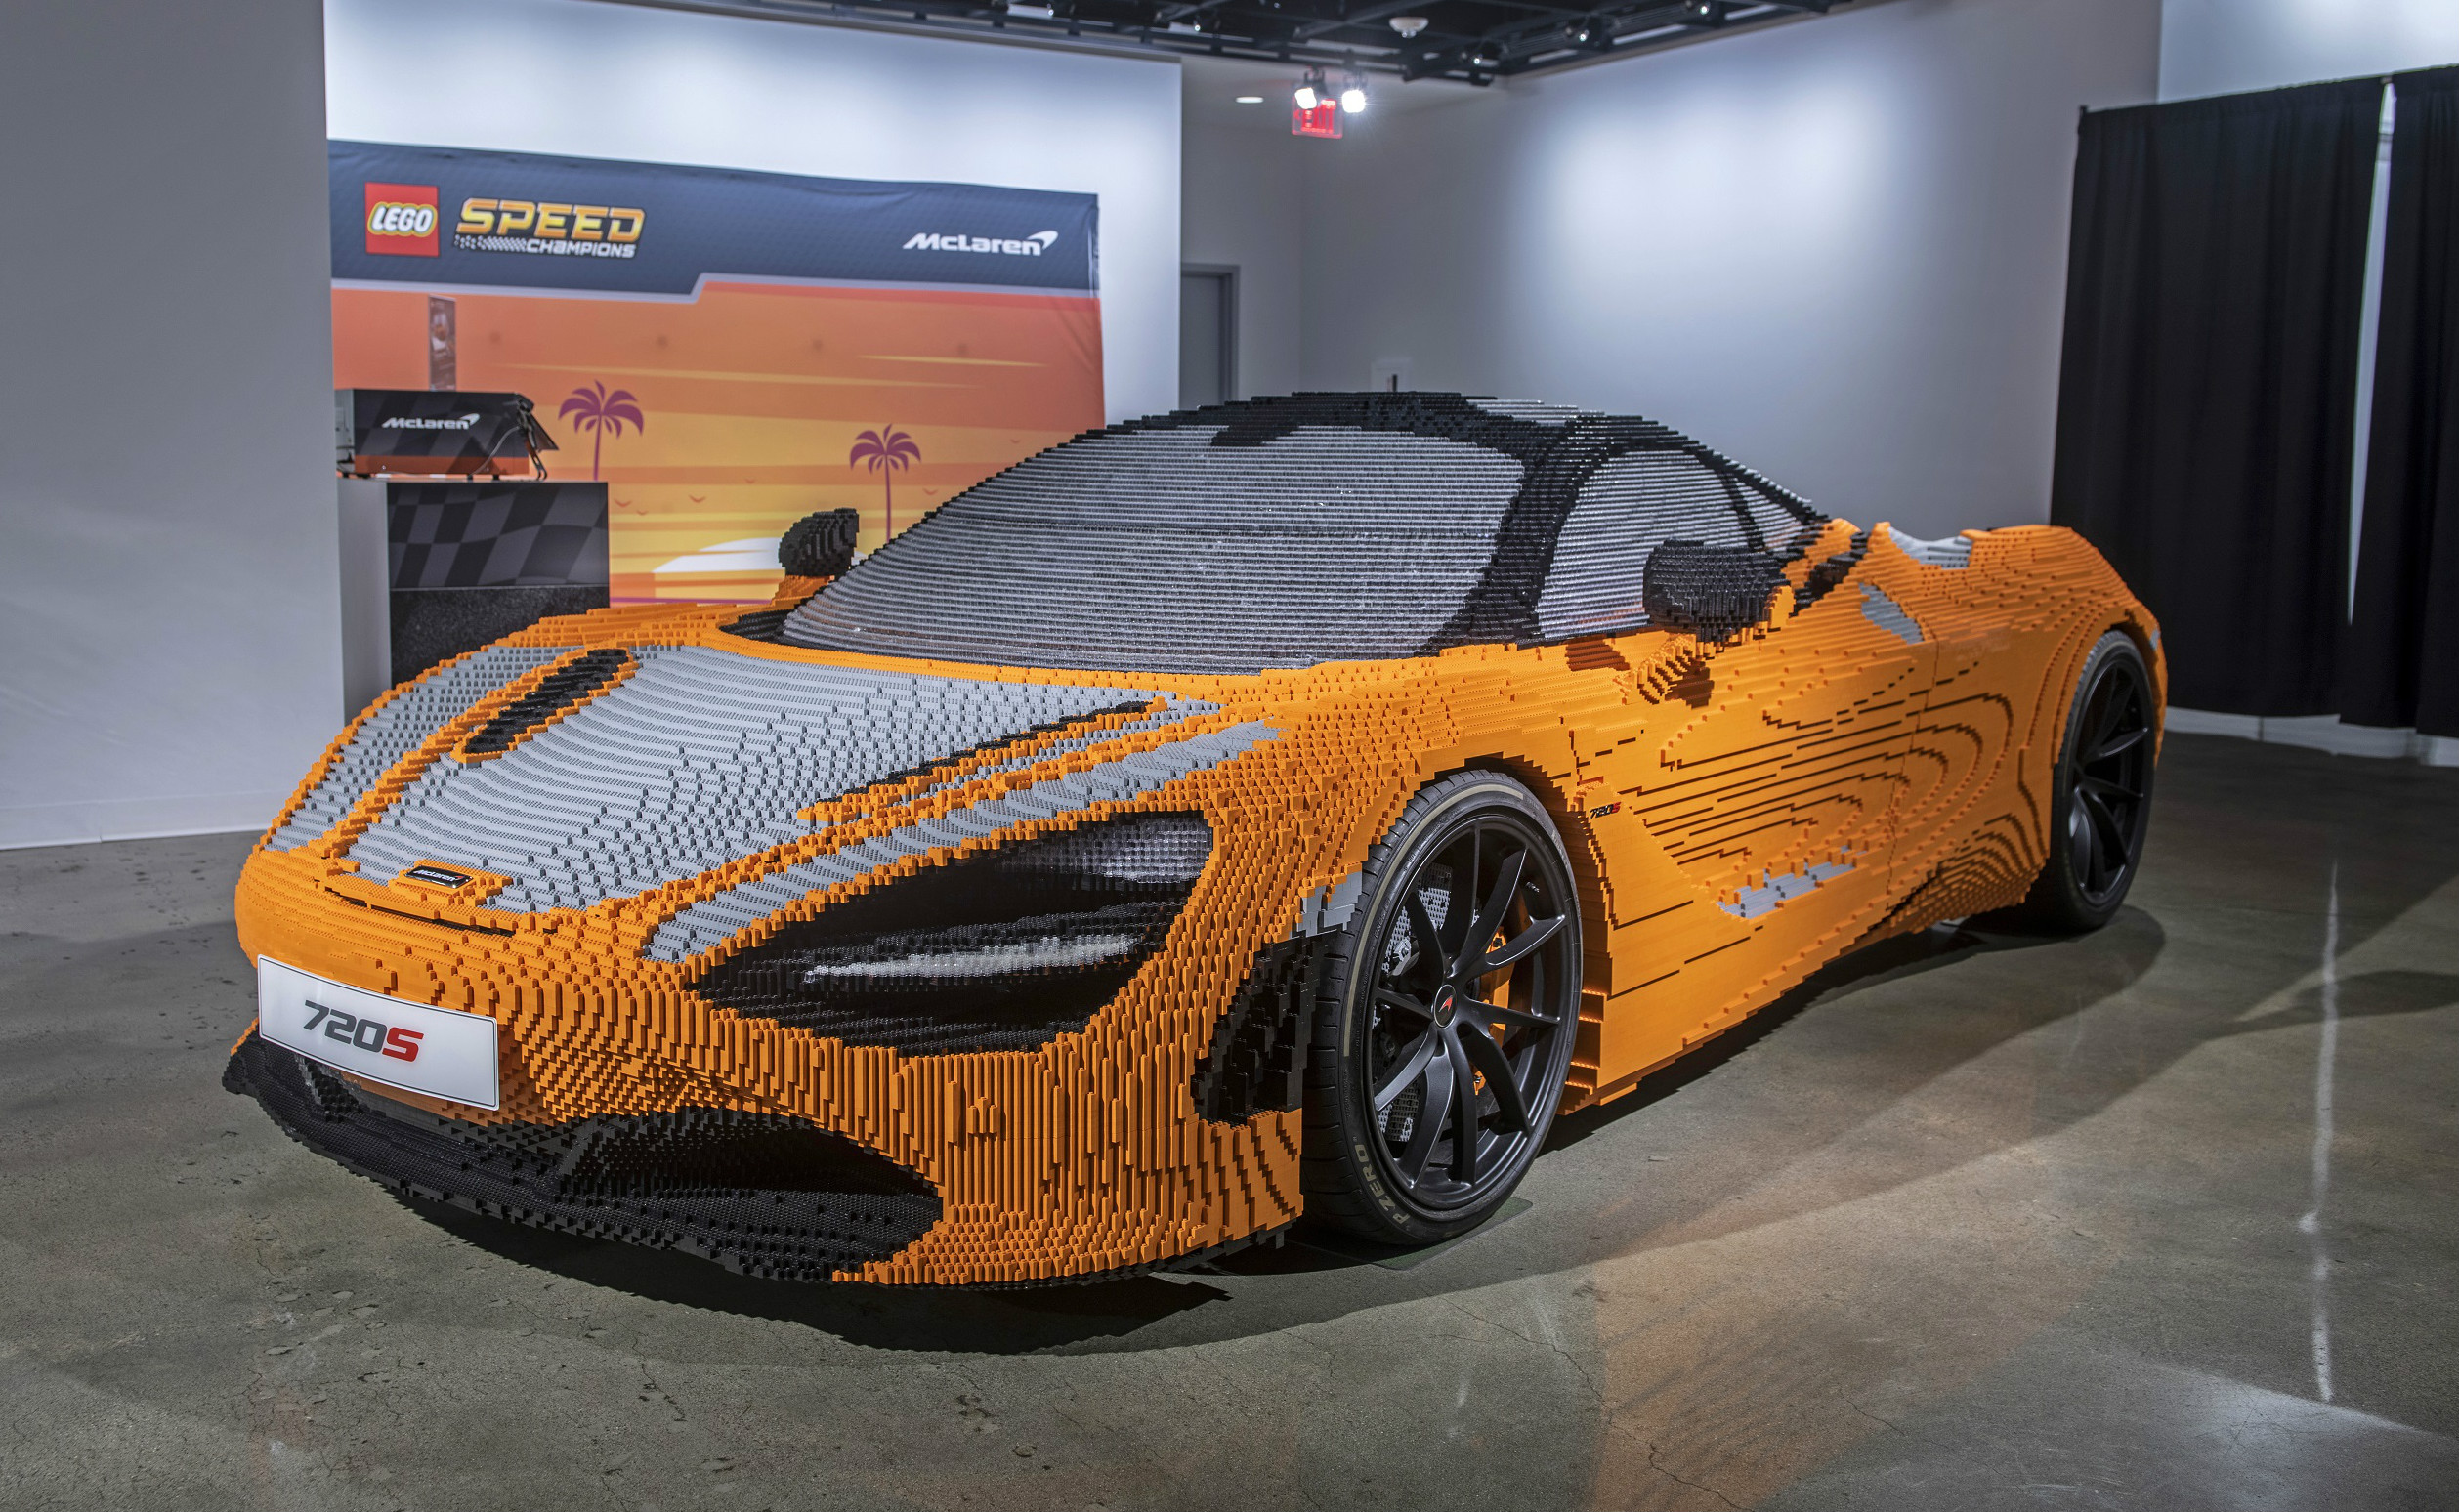 More than 280,000 Lego bricks were used in total to build the 1:1 scale model McLaren, which is now on display at the Petersen Automotive Museum, where the car was completed with help from museum visitors who placed the final bricks on the full-size 720S.